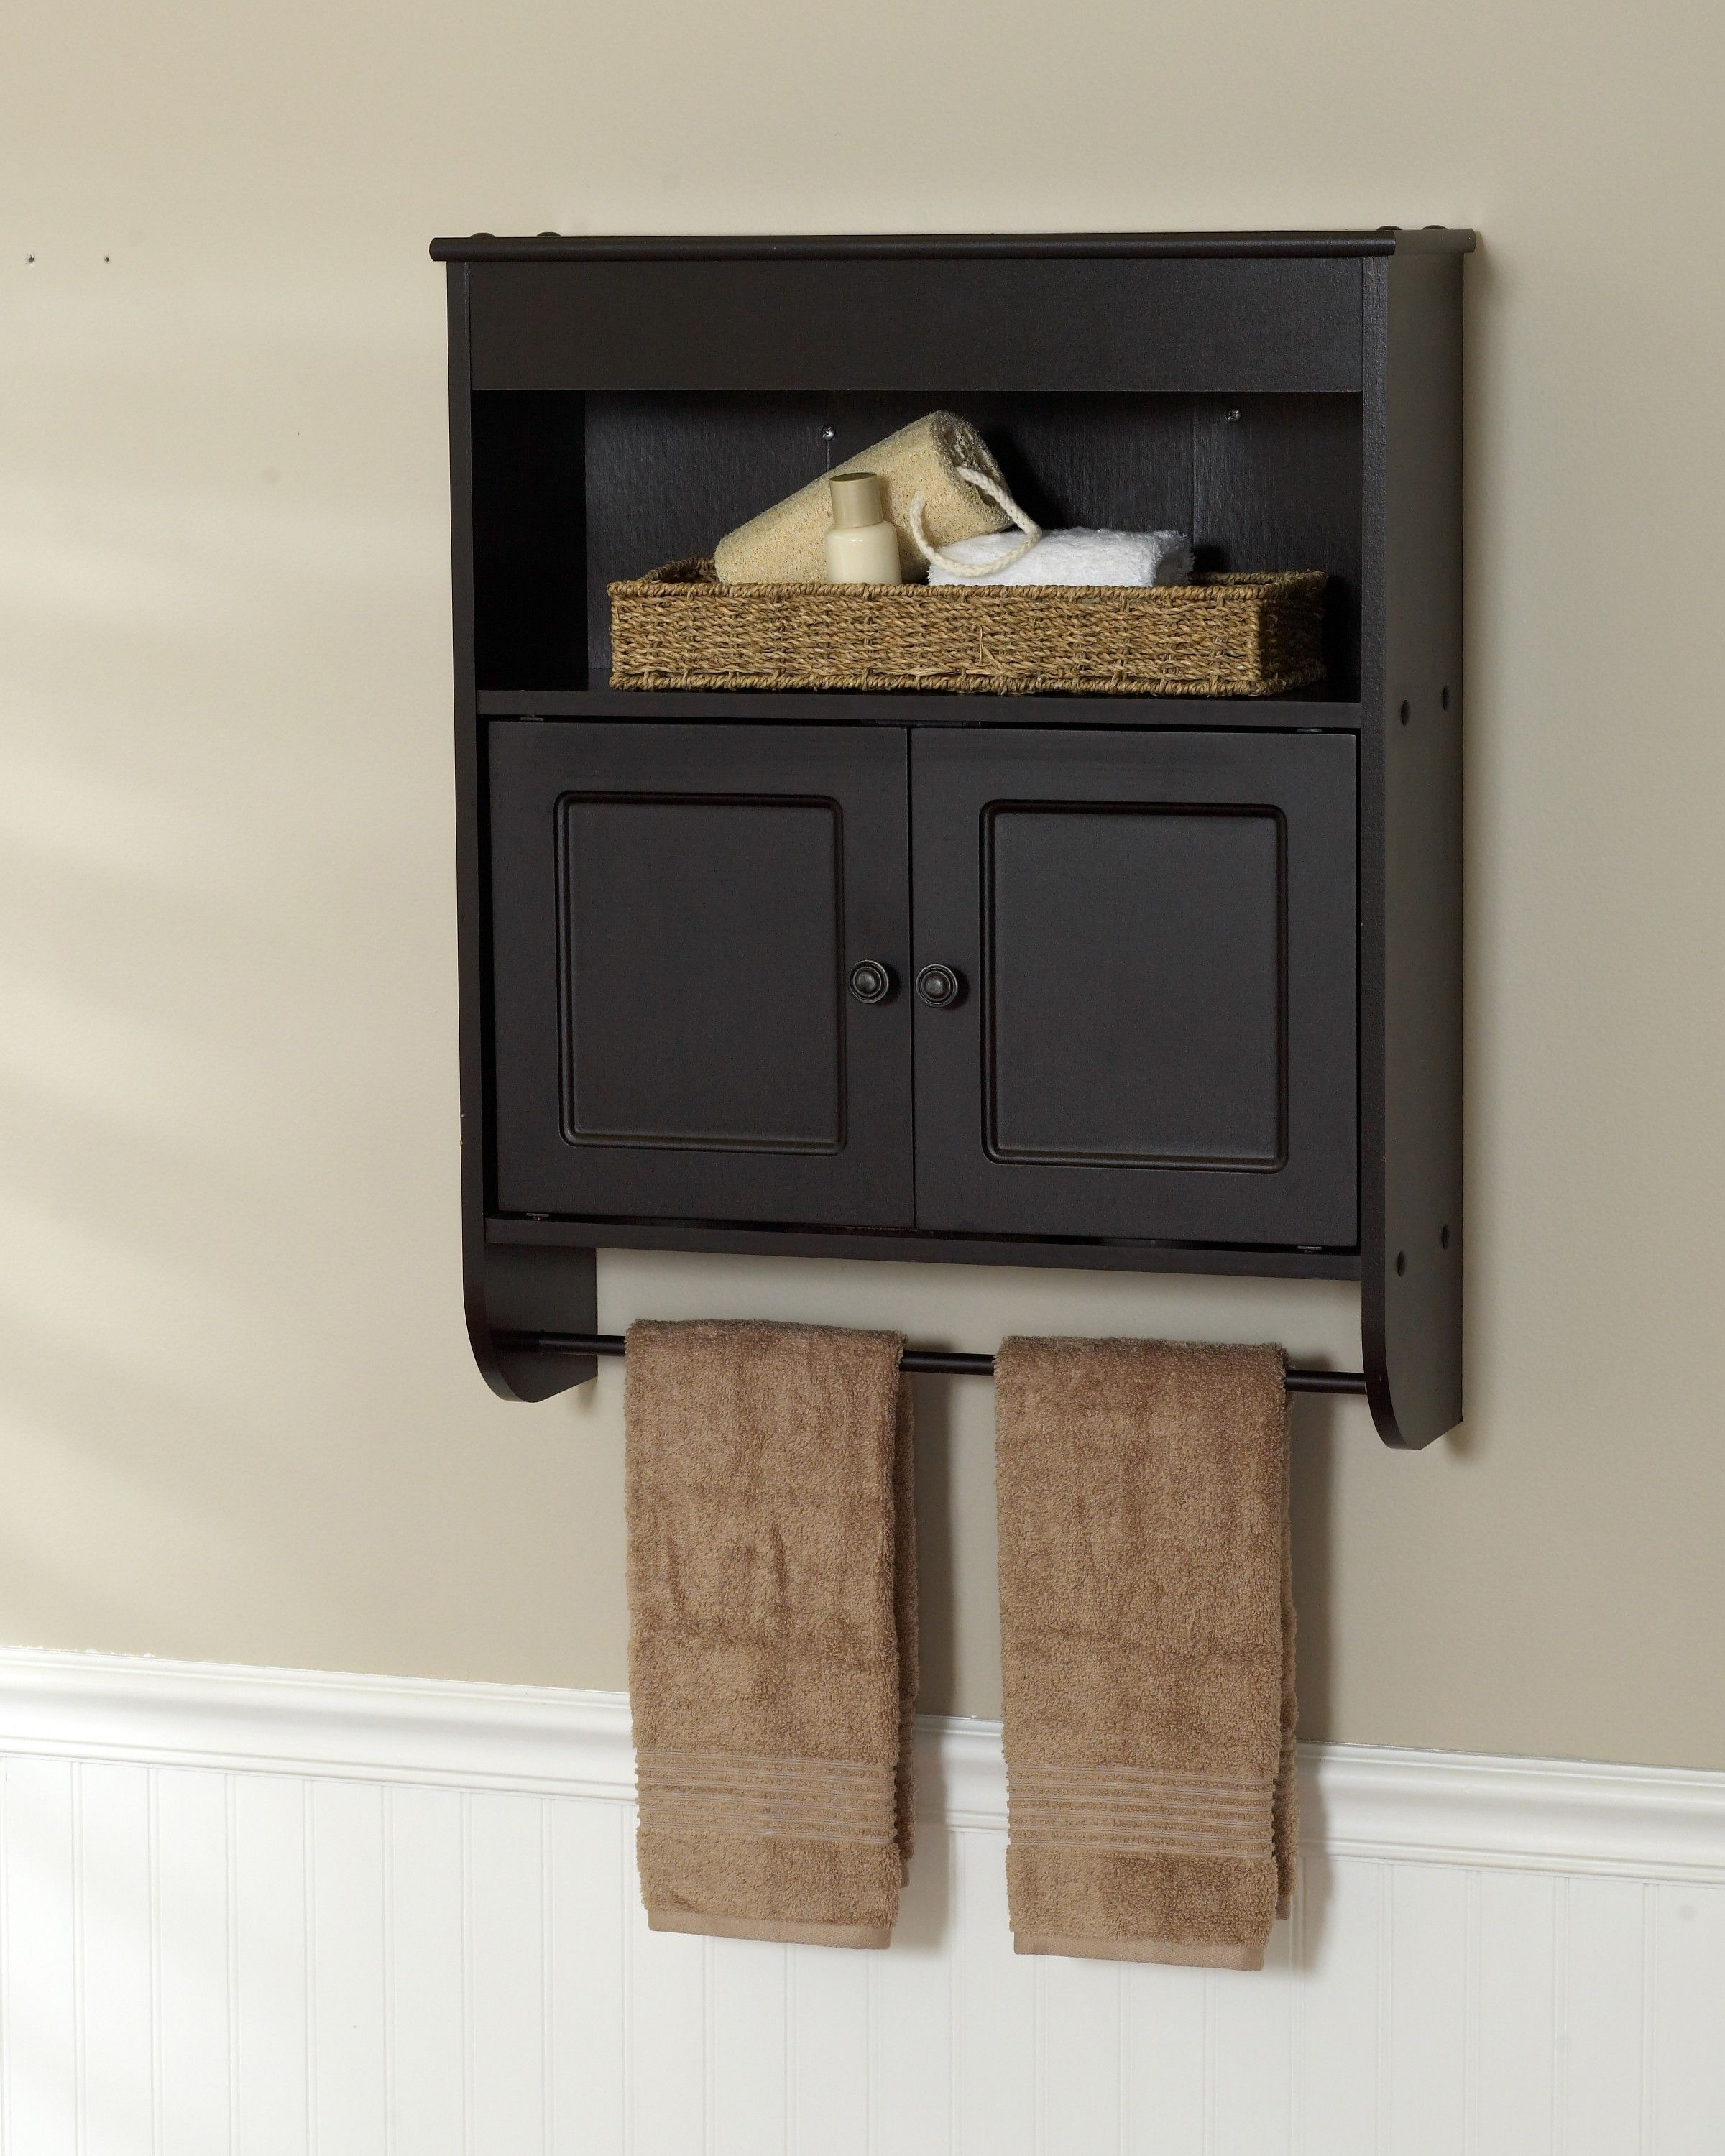 espresso cabinet with towel bar - zenith home corp. (zpc